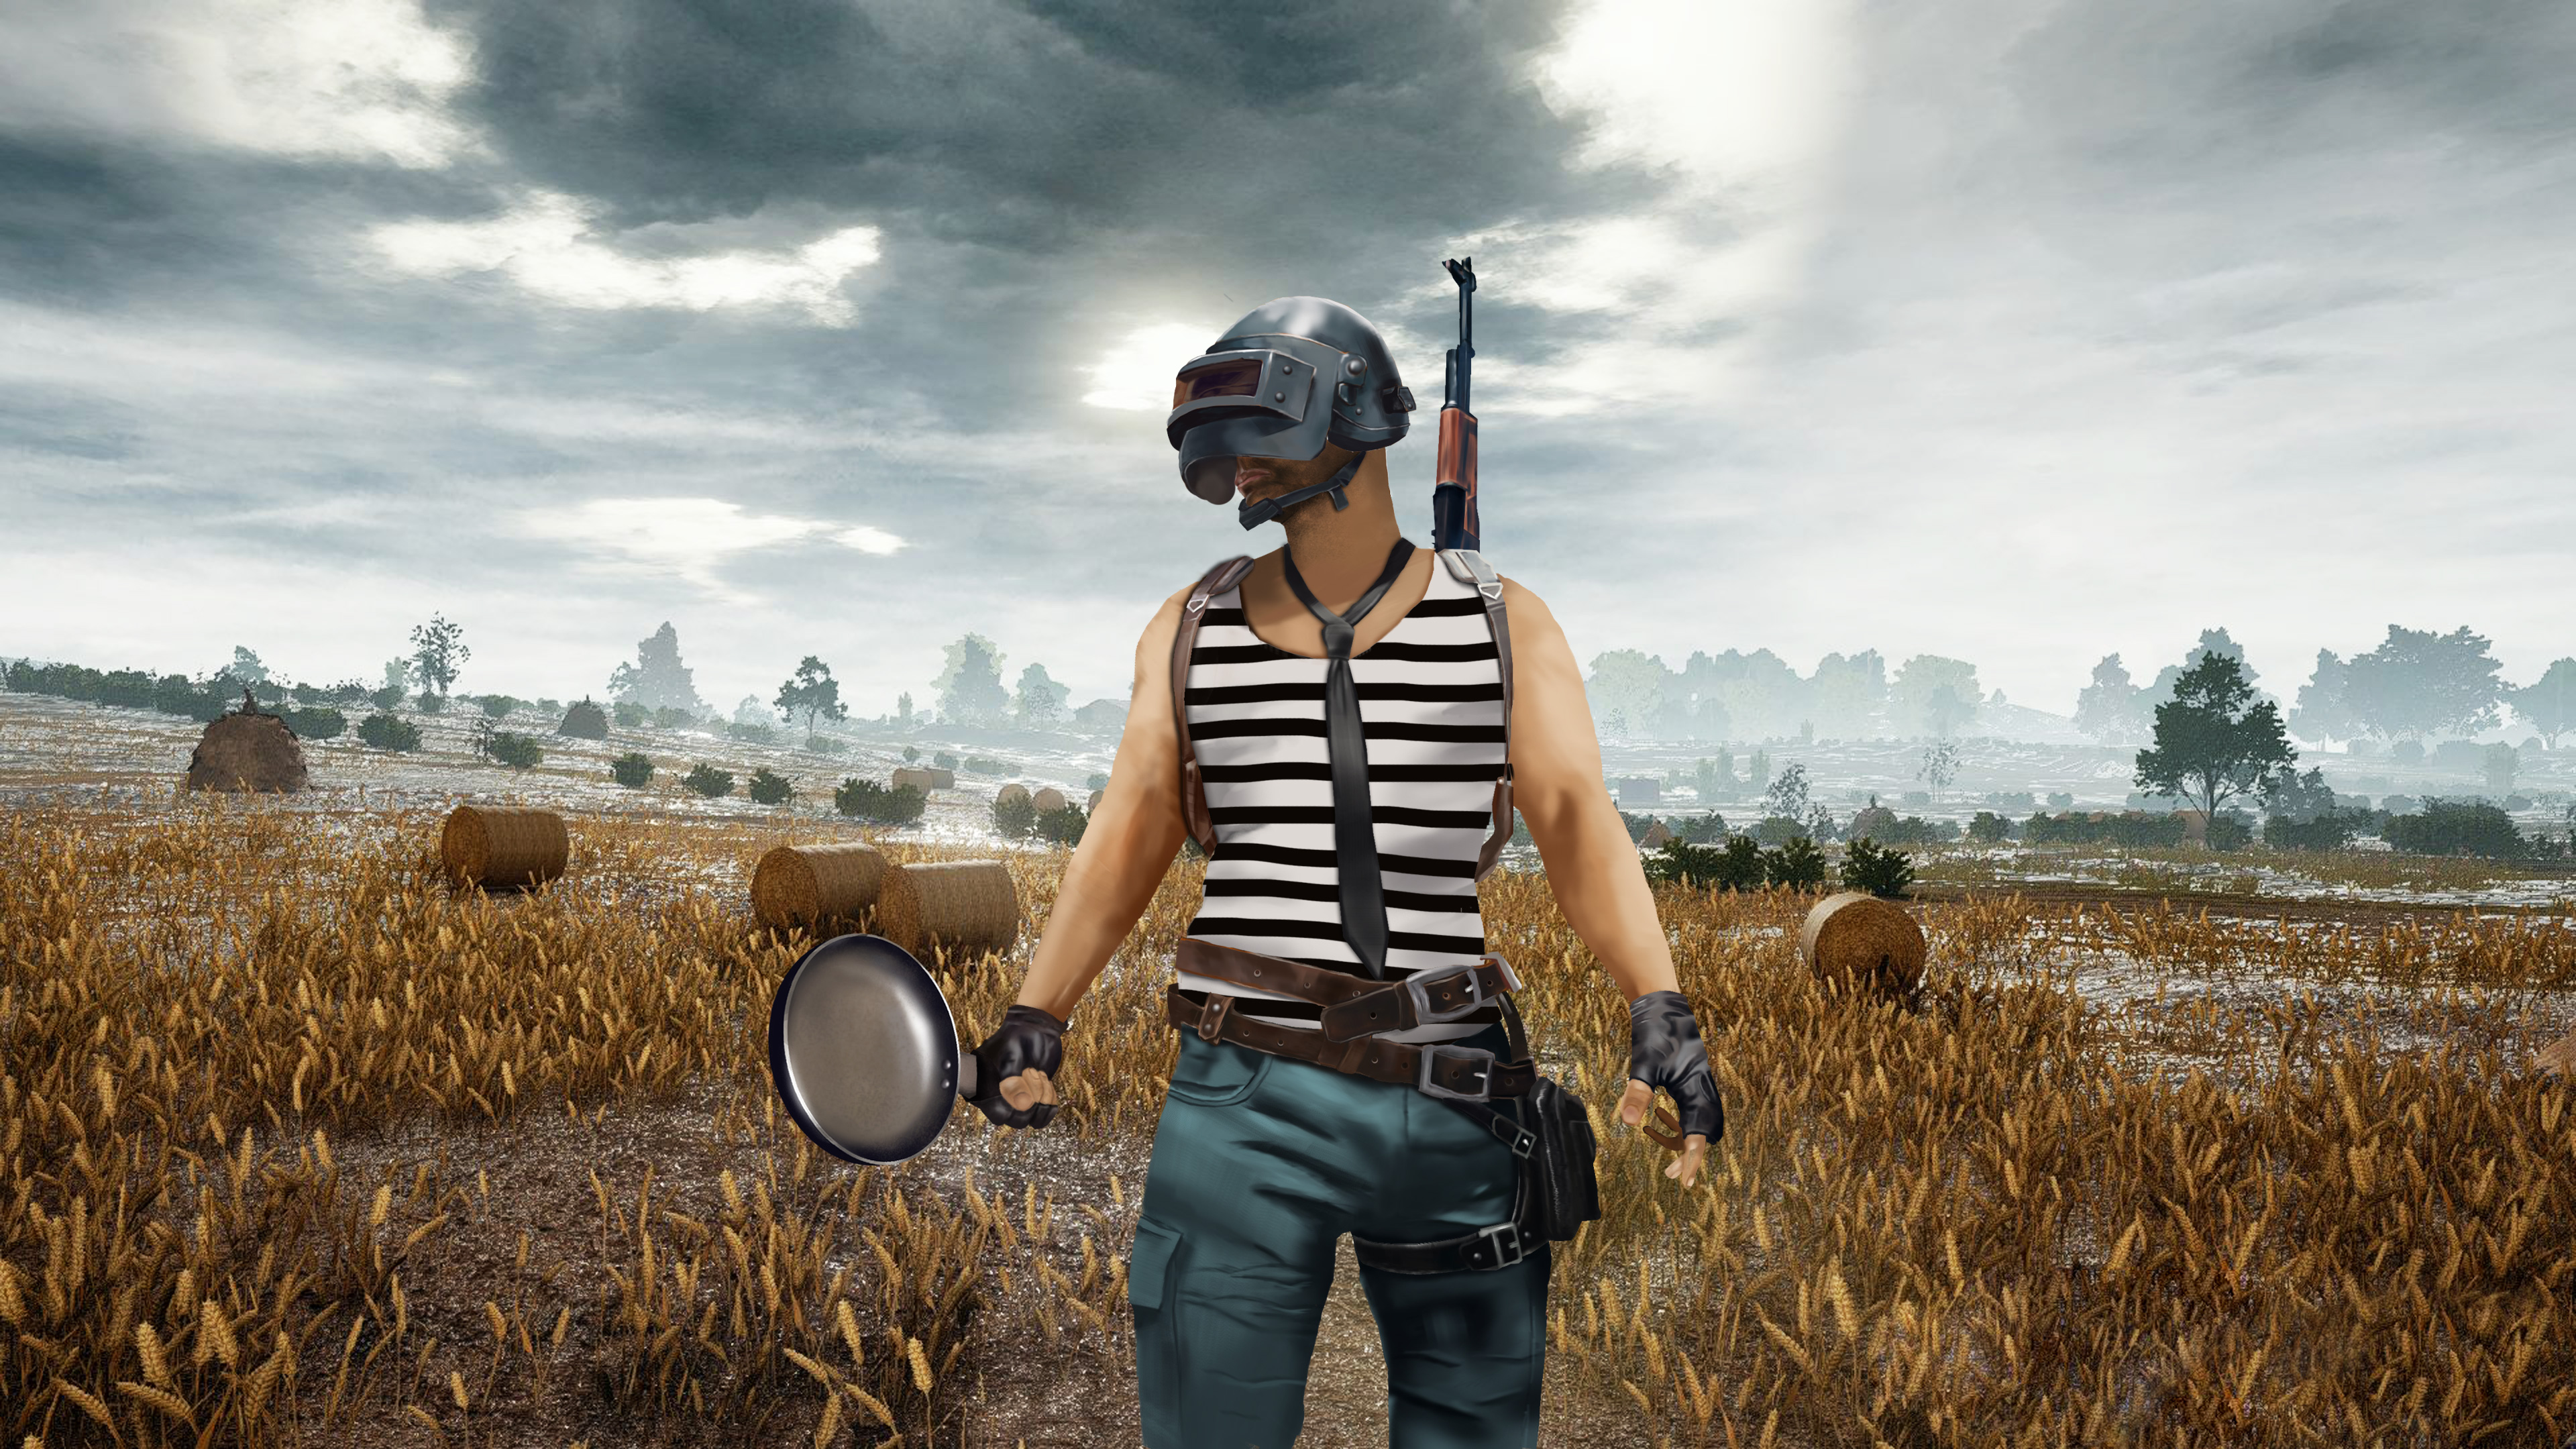 3840x2160 Pubg Game Helmet Guy 4k 4k Hd 4k Wallpapers: PUBG Helmet And Pan Player, HD Games, 4k Wallpapers